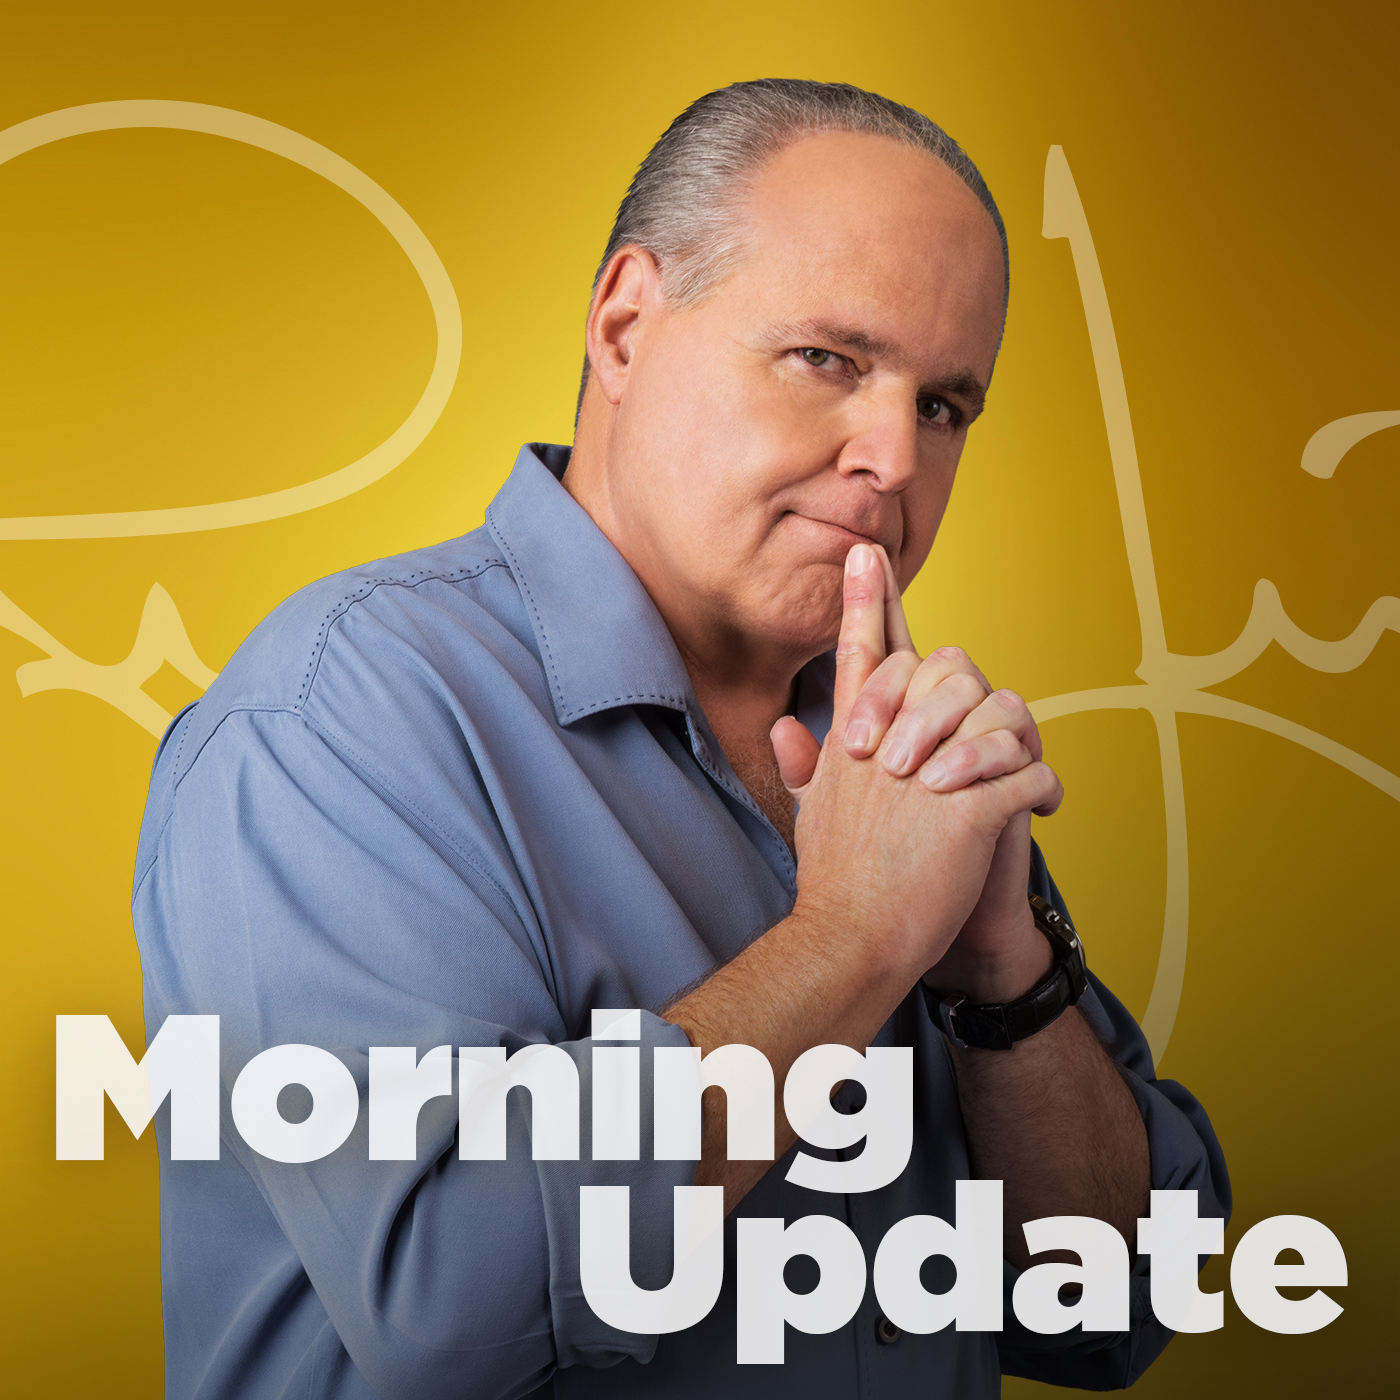 Rush Limbaugh Jan 16, 2020